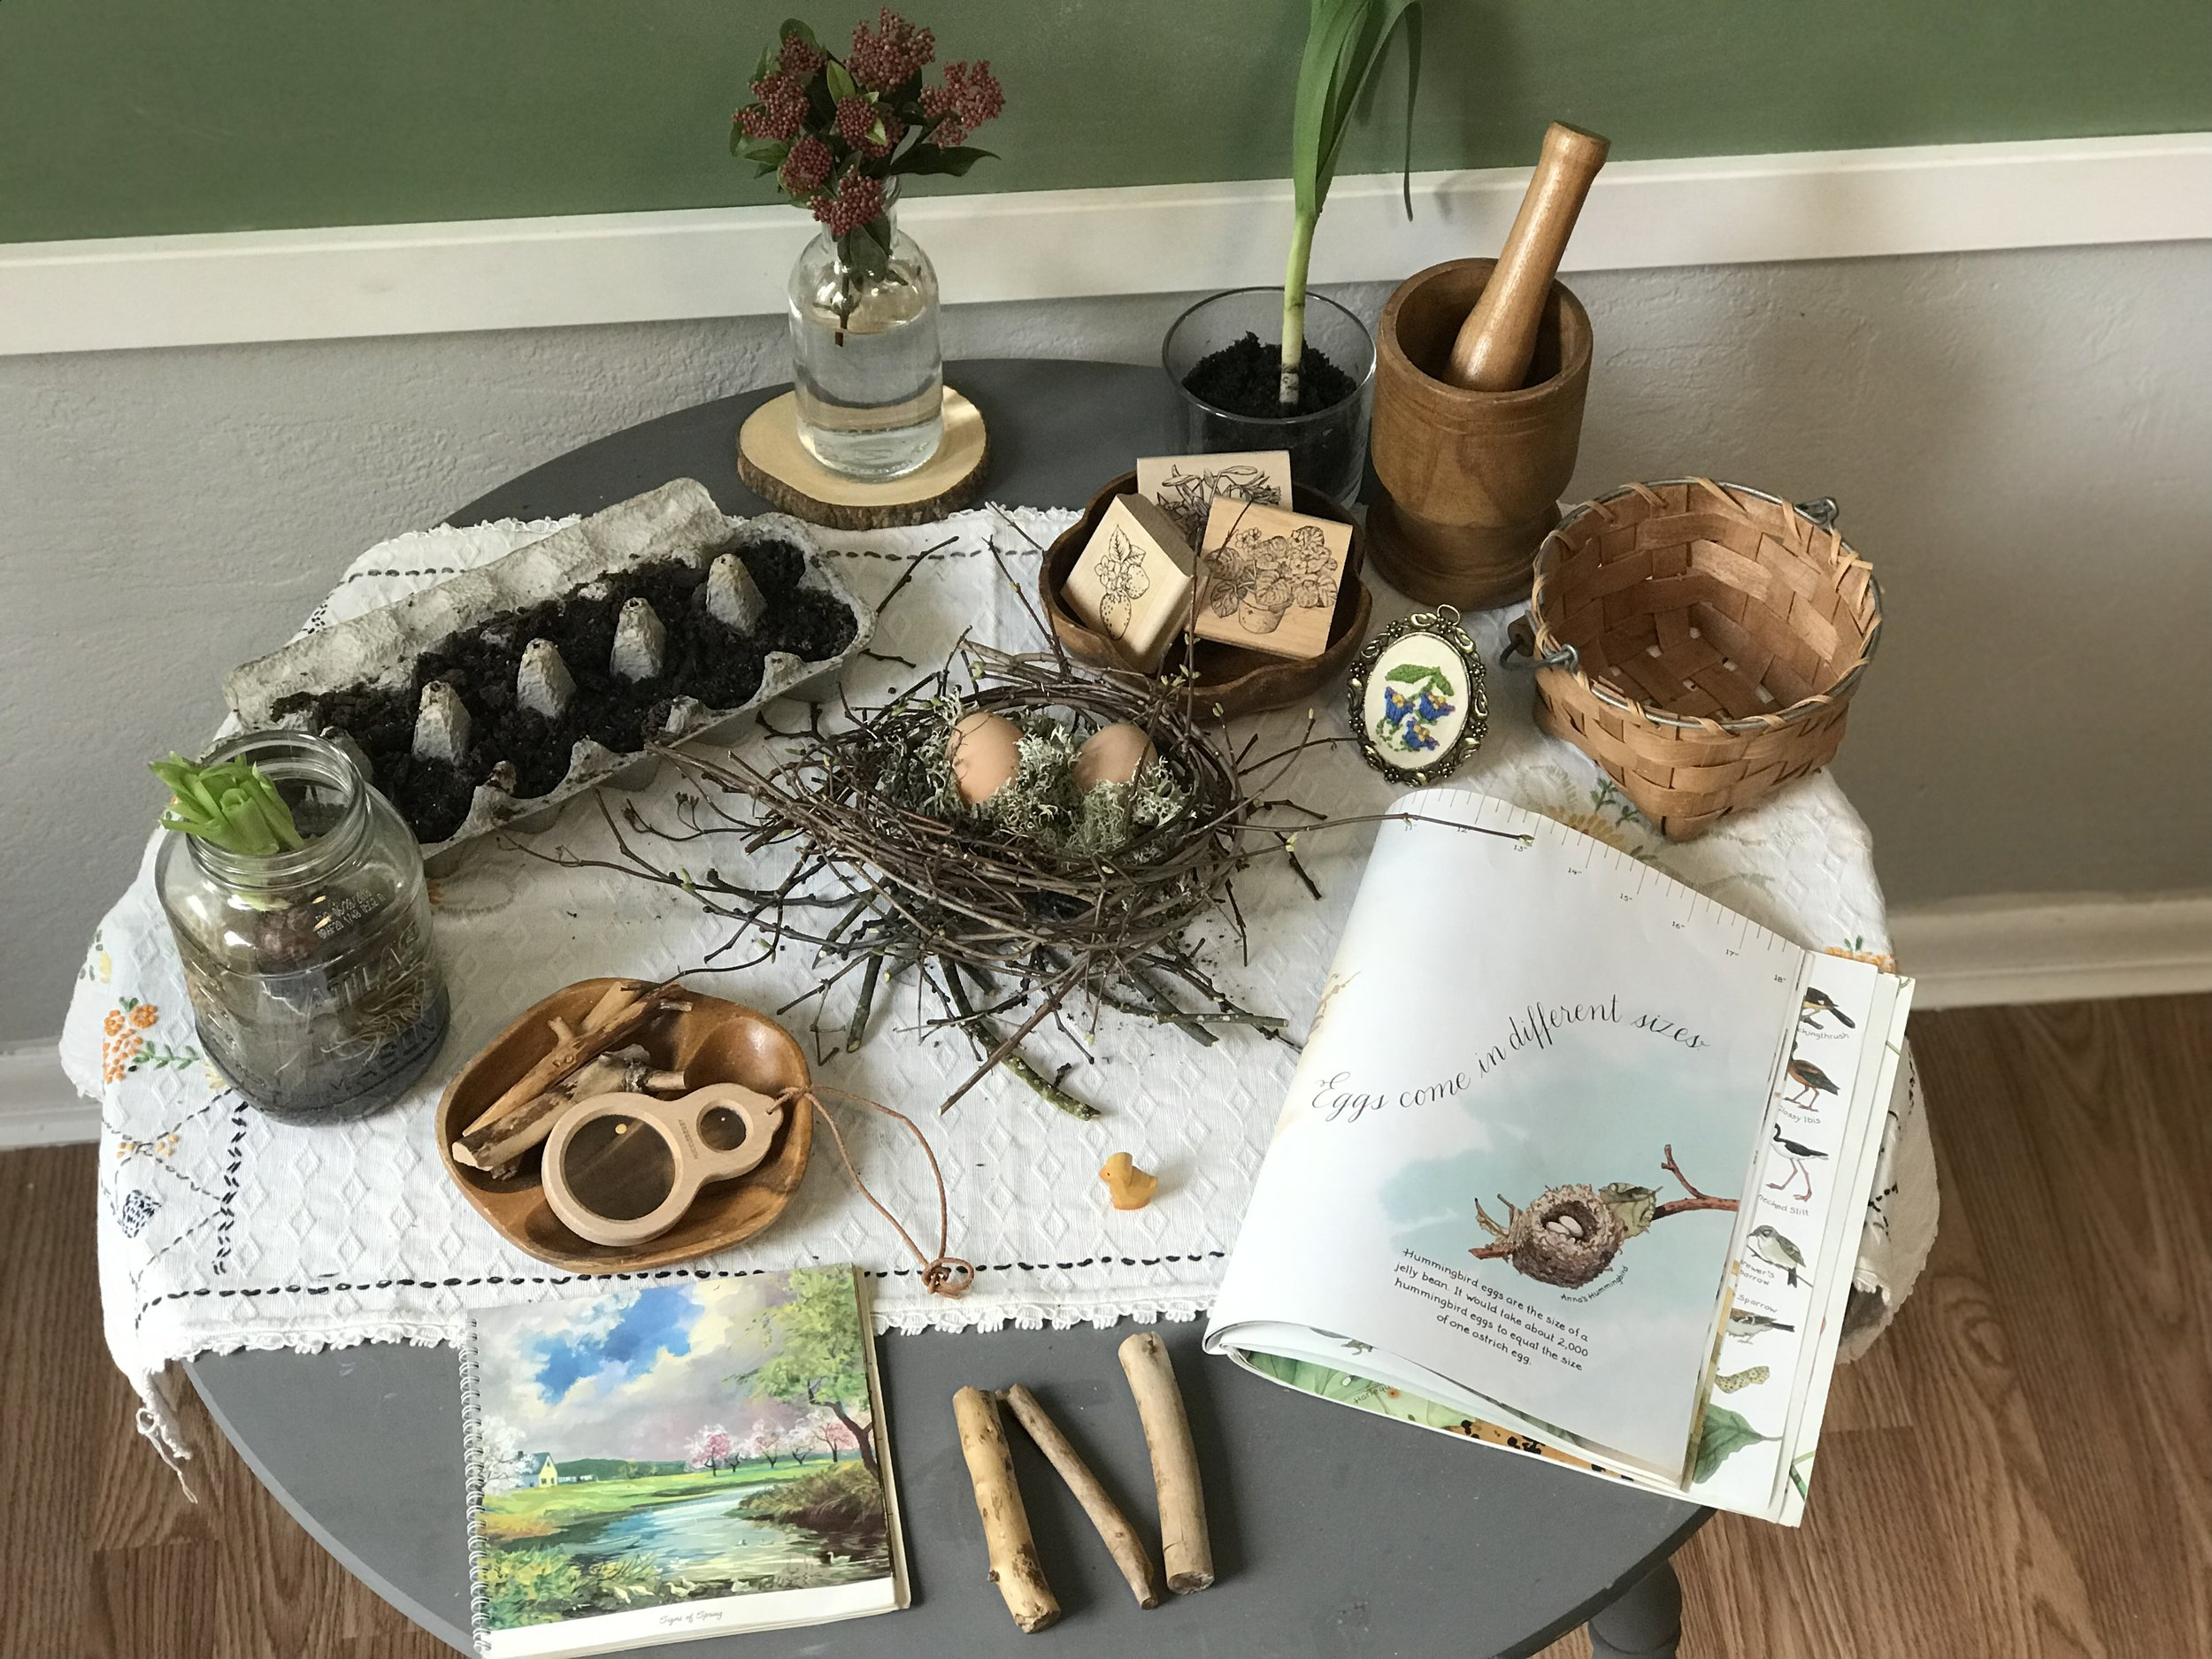 Example of a nature table.